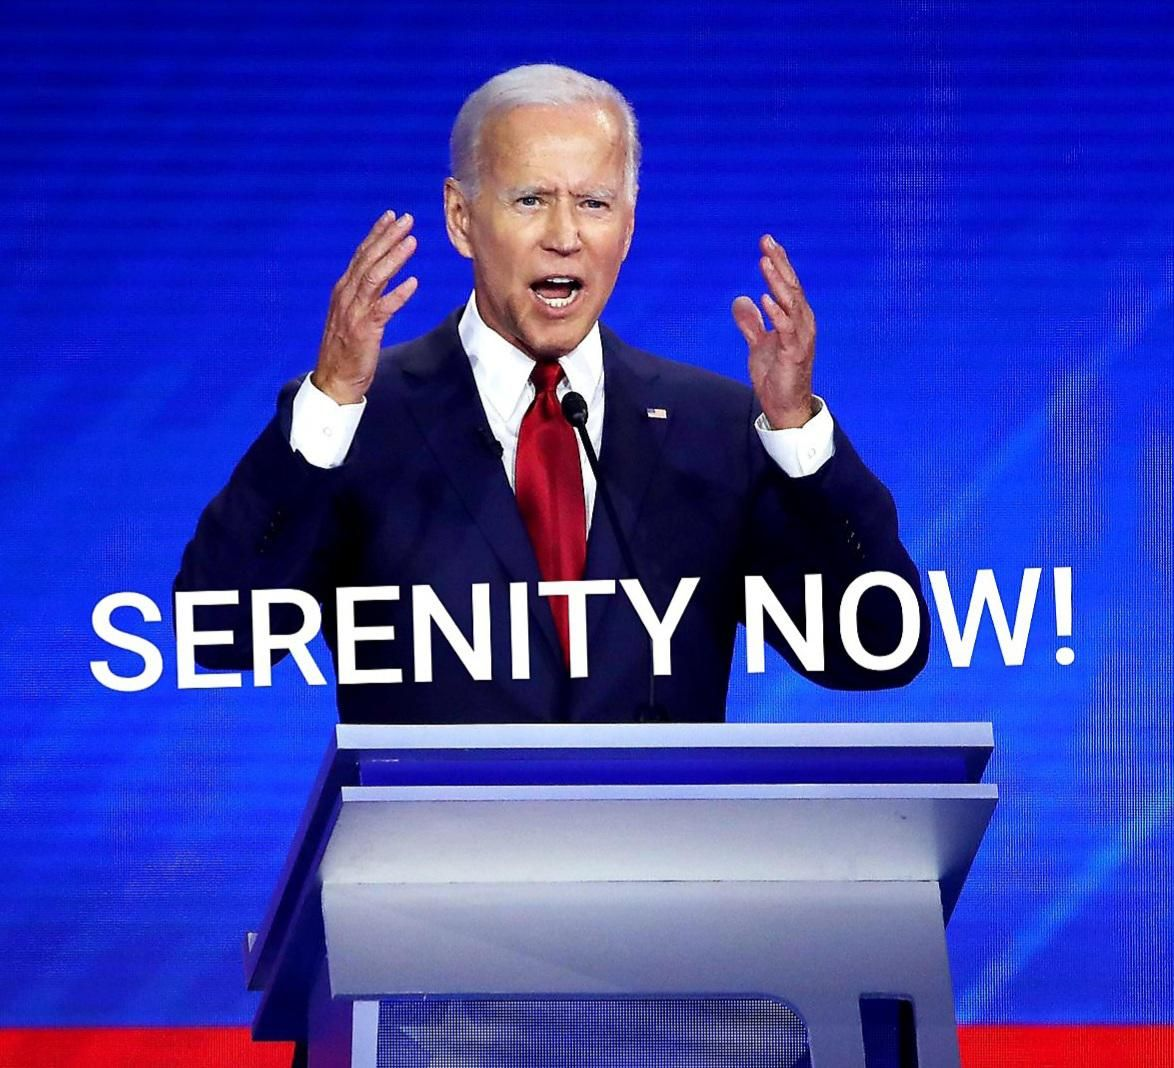 Biden S Mantra For His Next Debate Thorgift Com If You Like It Please Buy Some From Thorgift Com In 2020 Seinfeld Funny Funny Memes Serenity Now